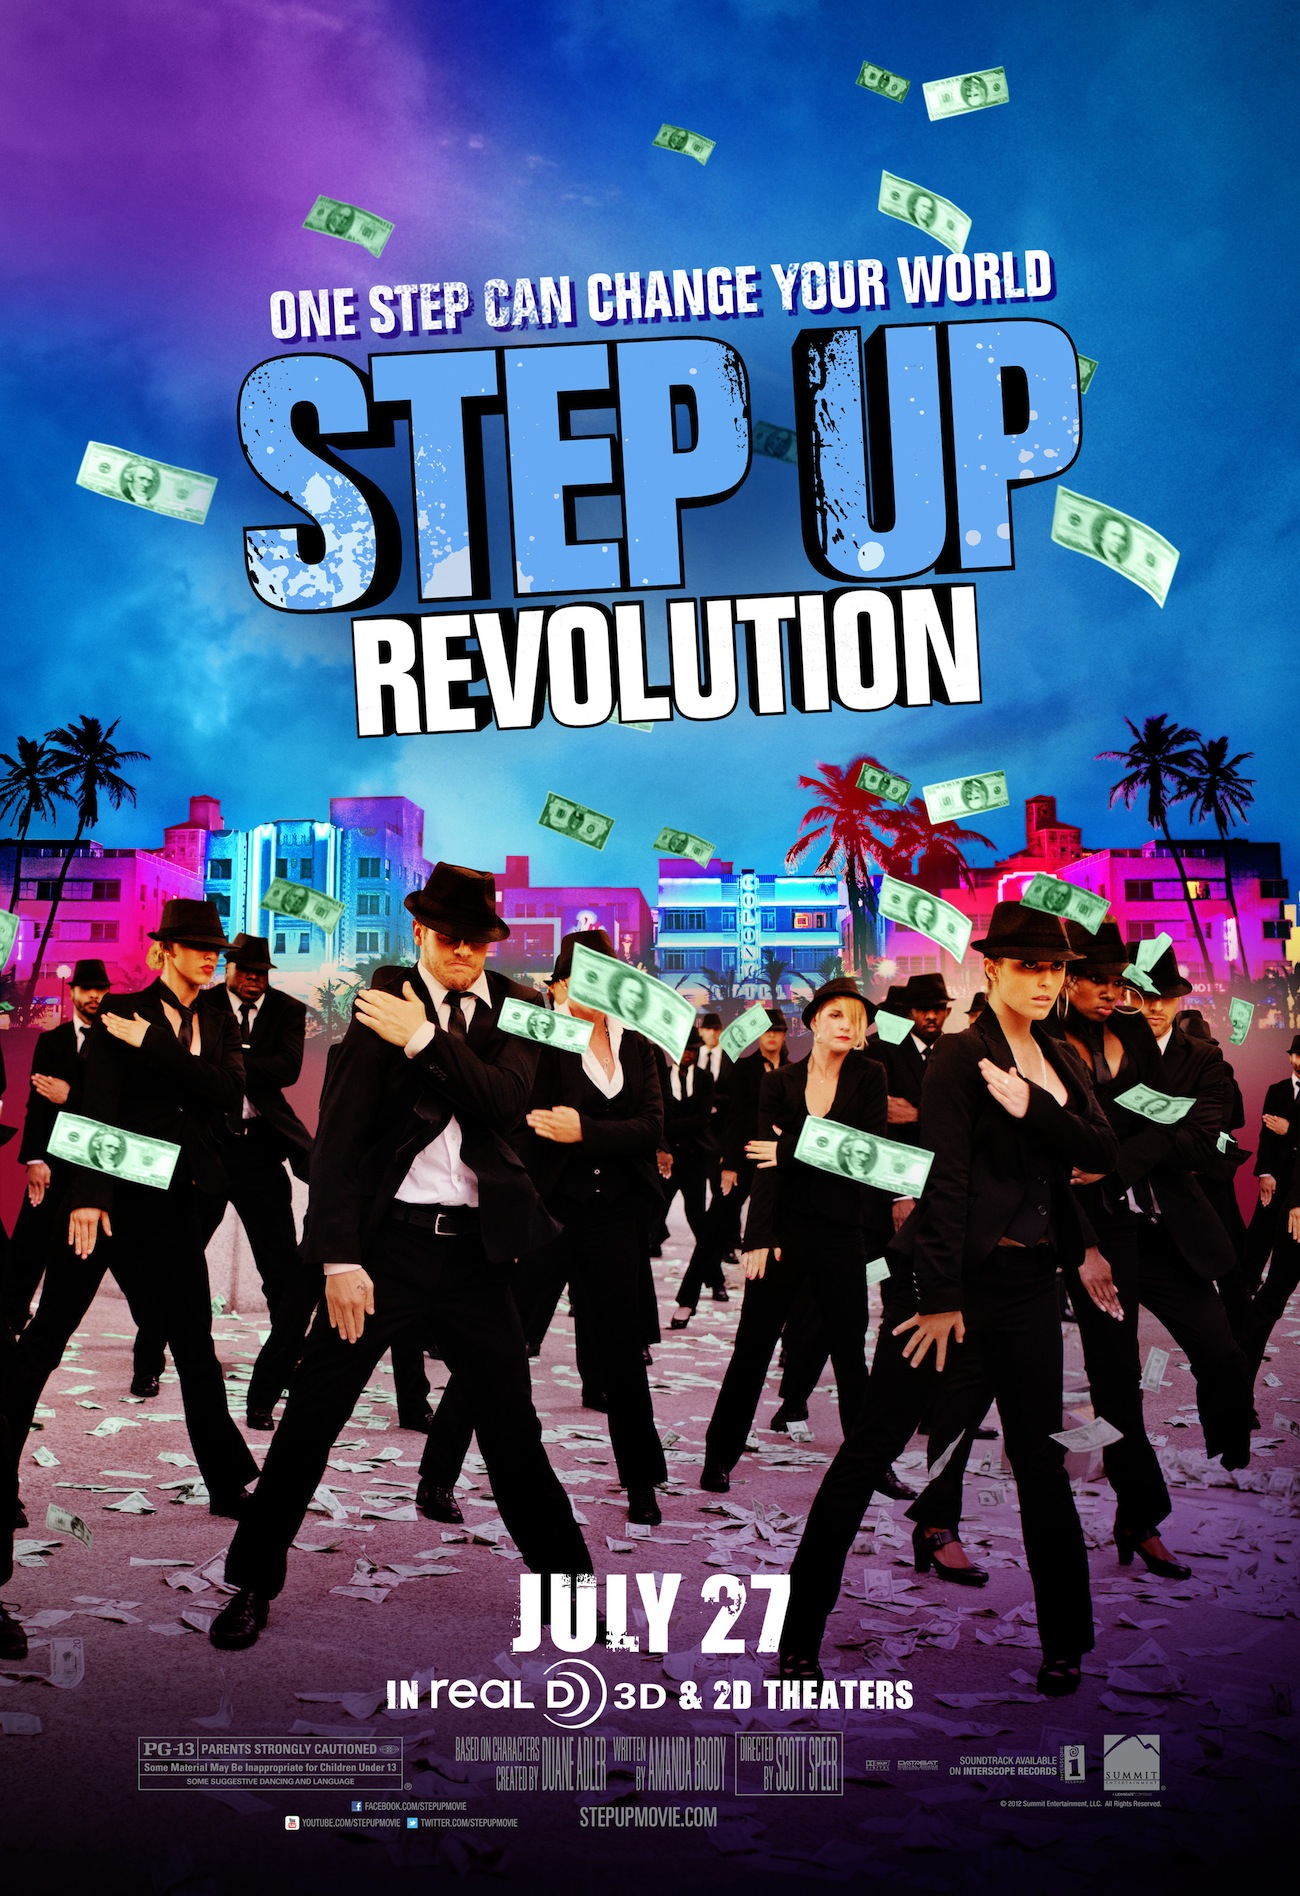 Step up 4 miami heat revolution (hot new 2012 movie) free download.